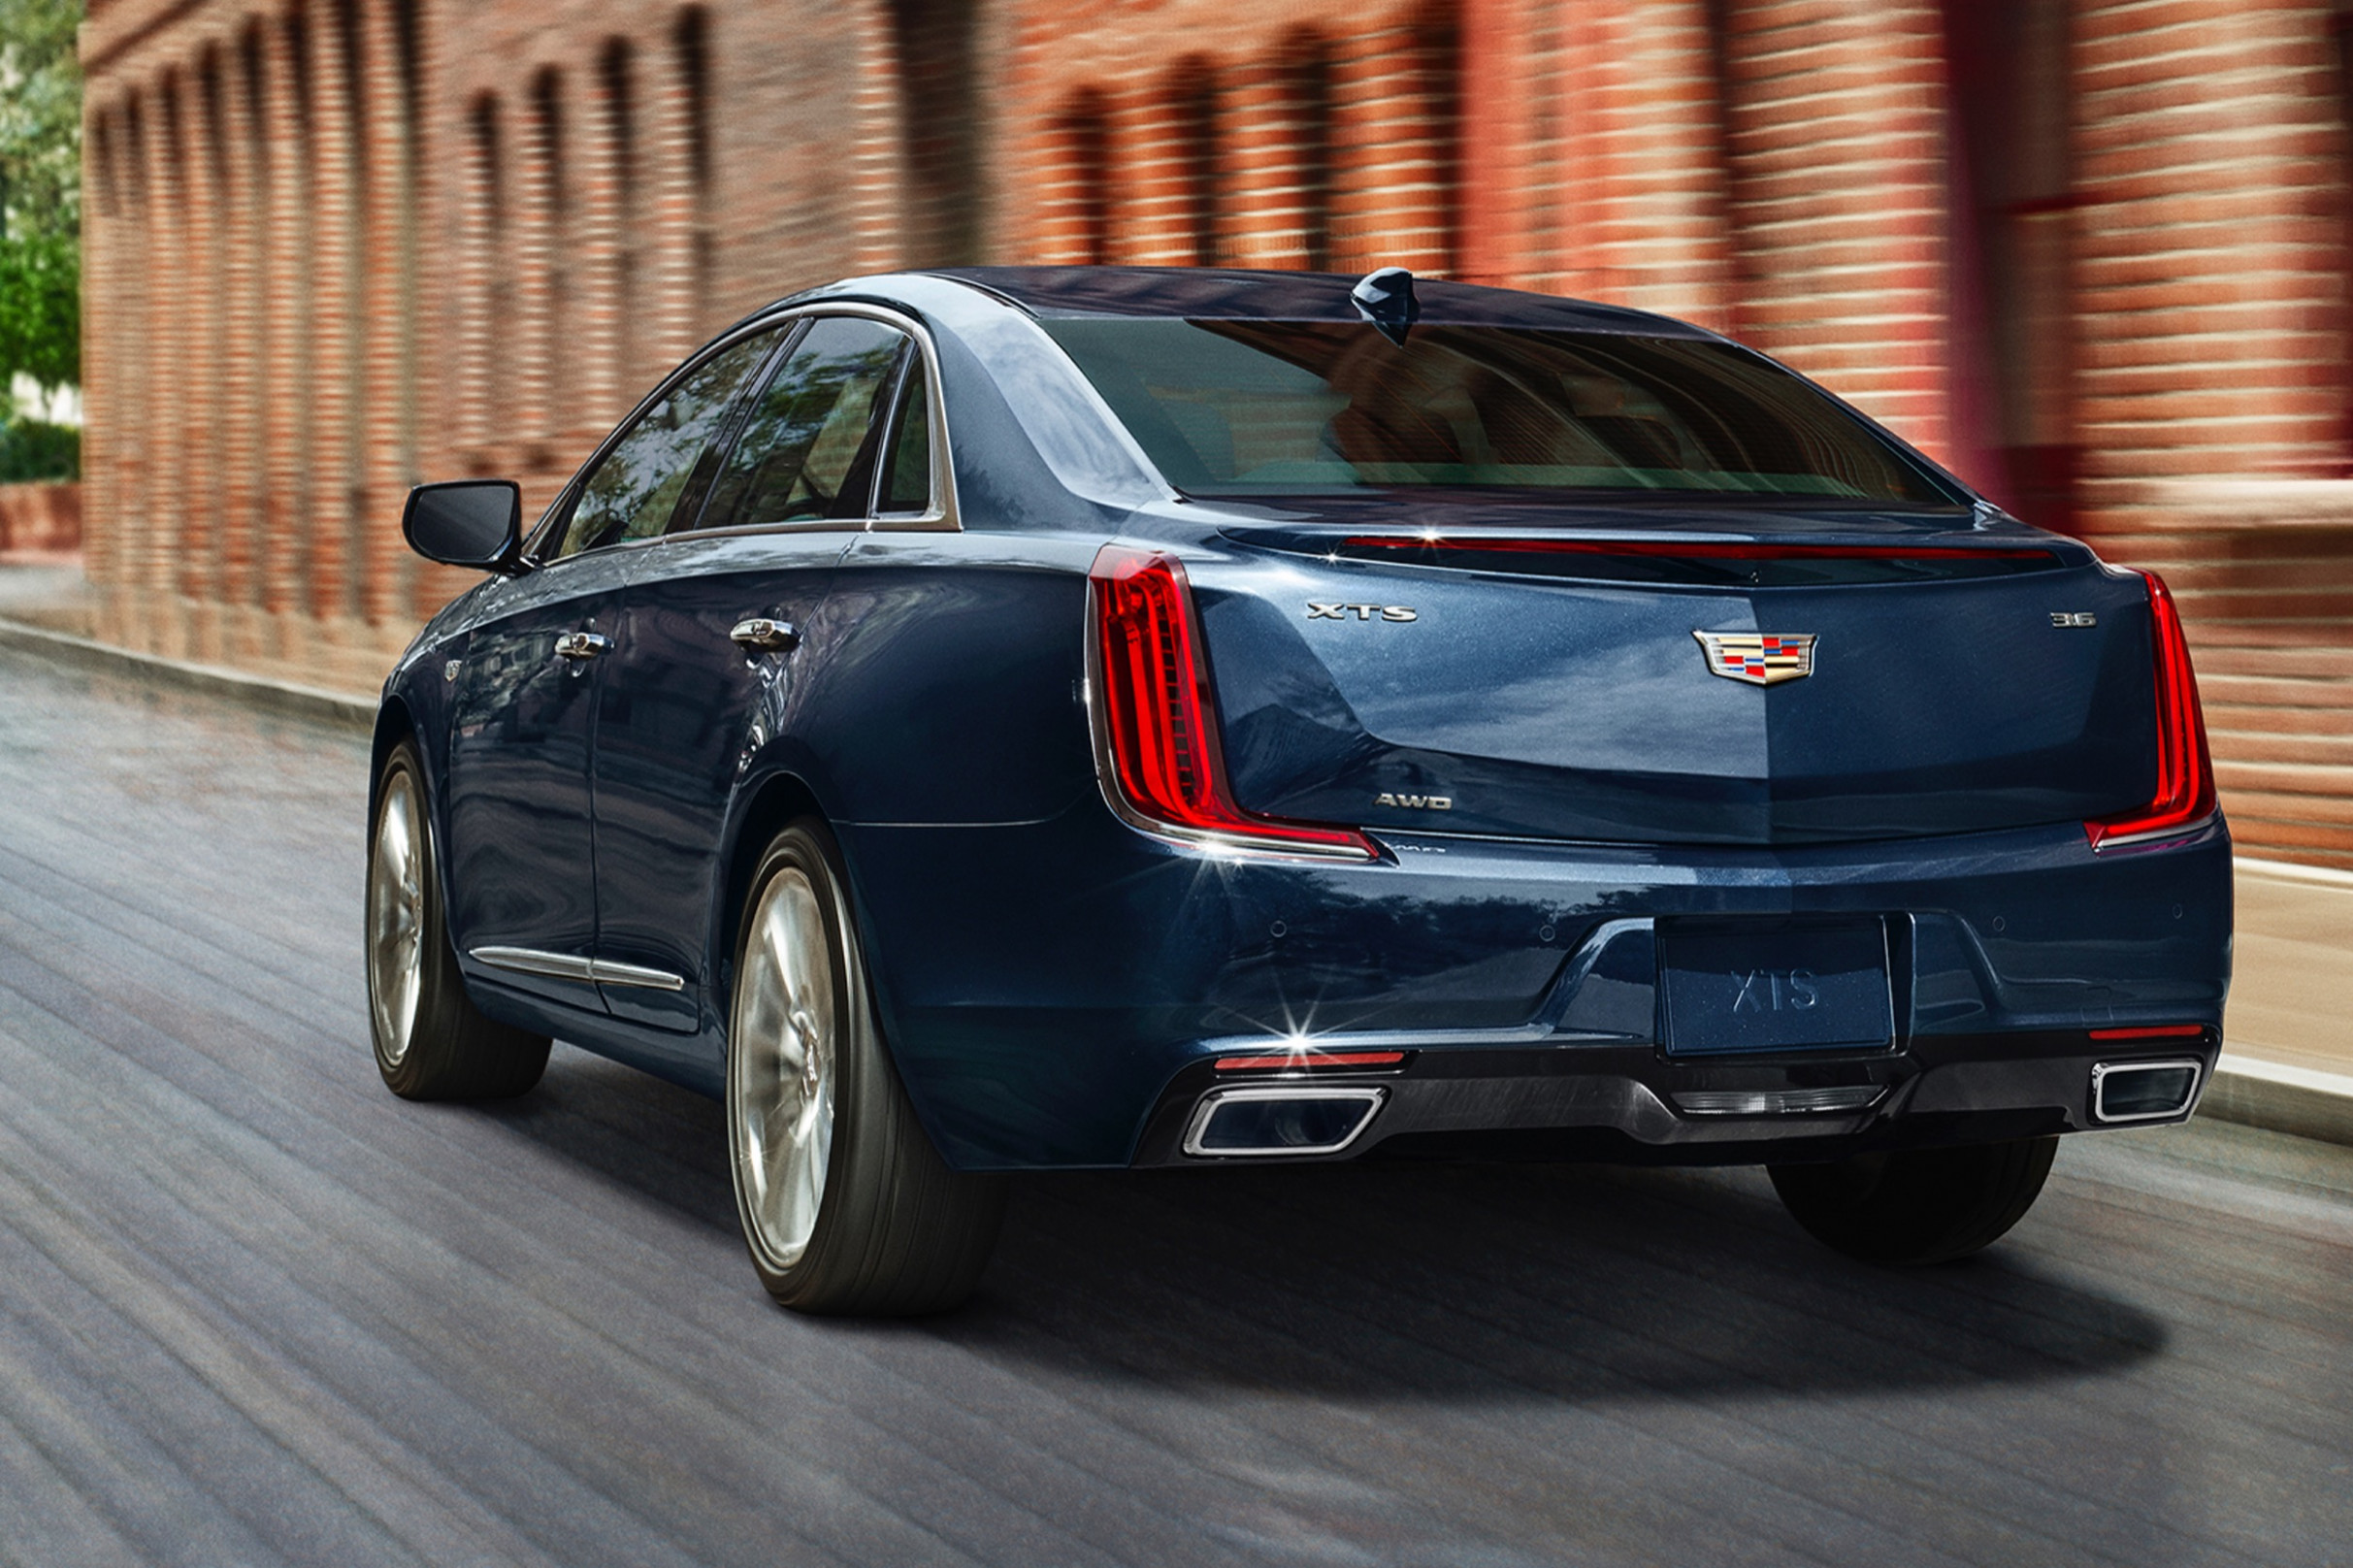 8 Cadillac XTS Info, Pictures, Specs, Wiki | GM Authority - cadillac discontinued cars 2020